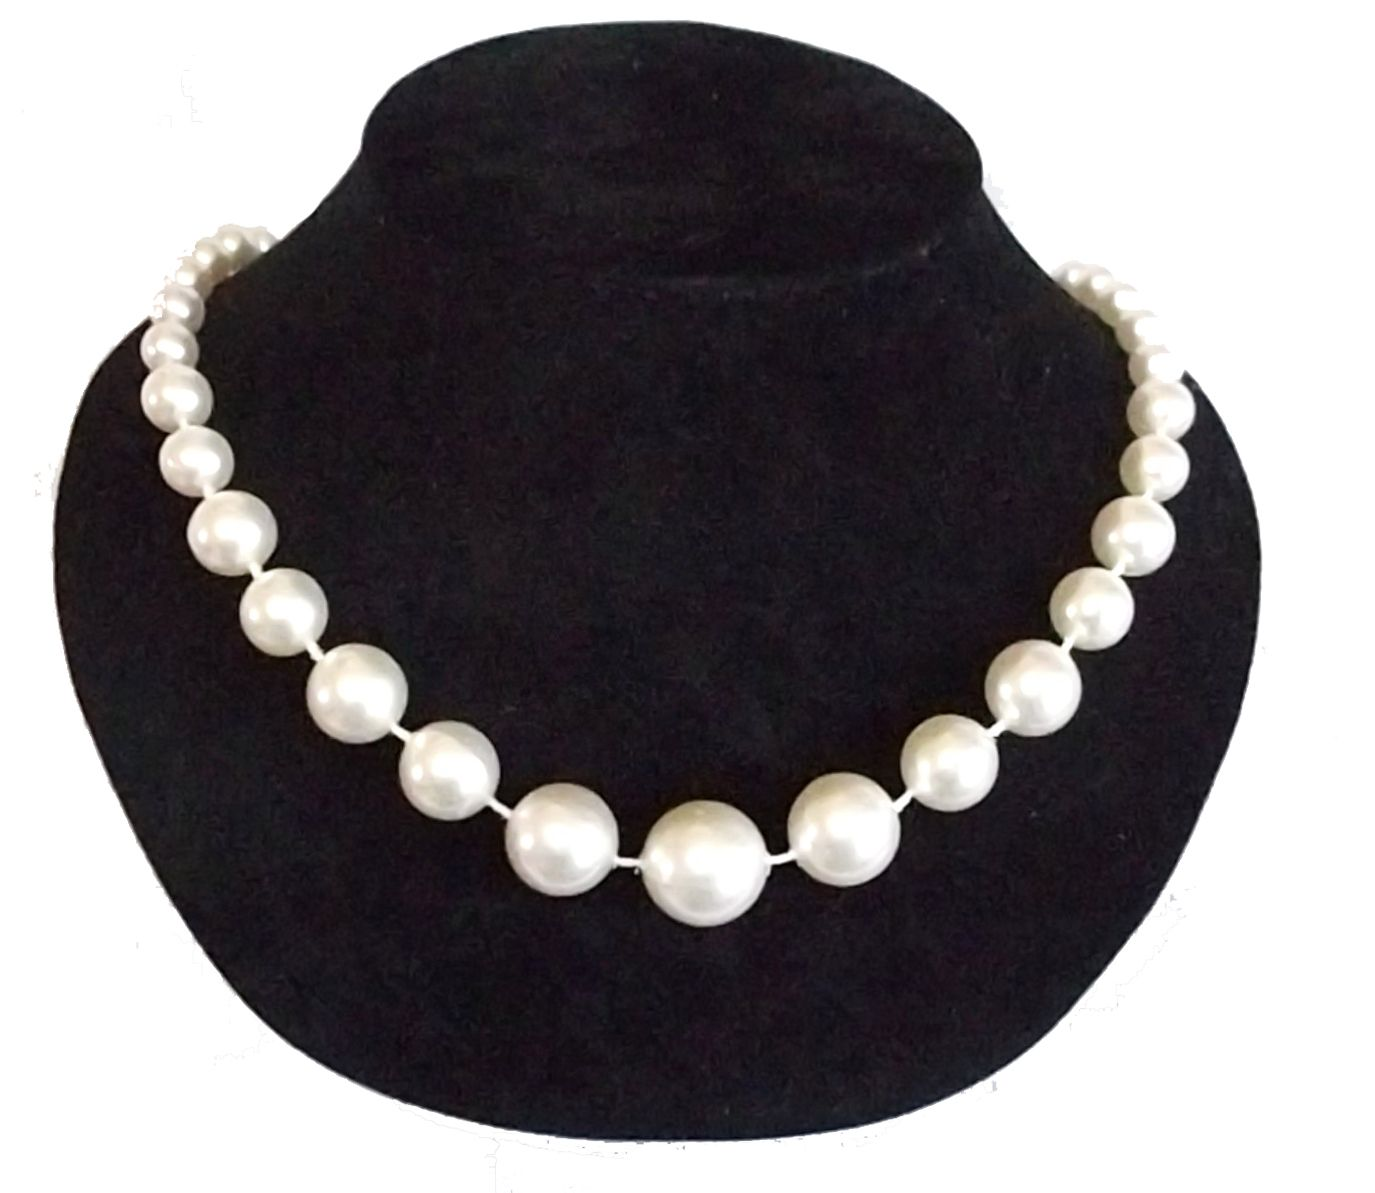 b7f4d0fb2ea87 New Vintage 1950's Style Faux Pearl graduated beads Necklace